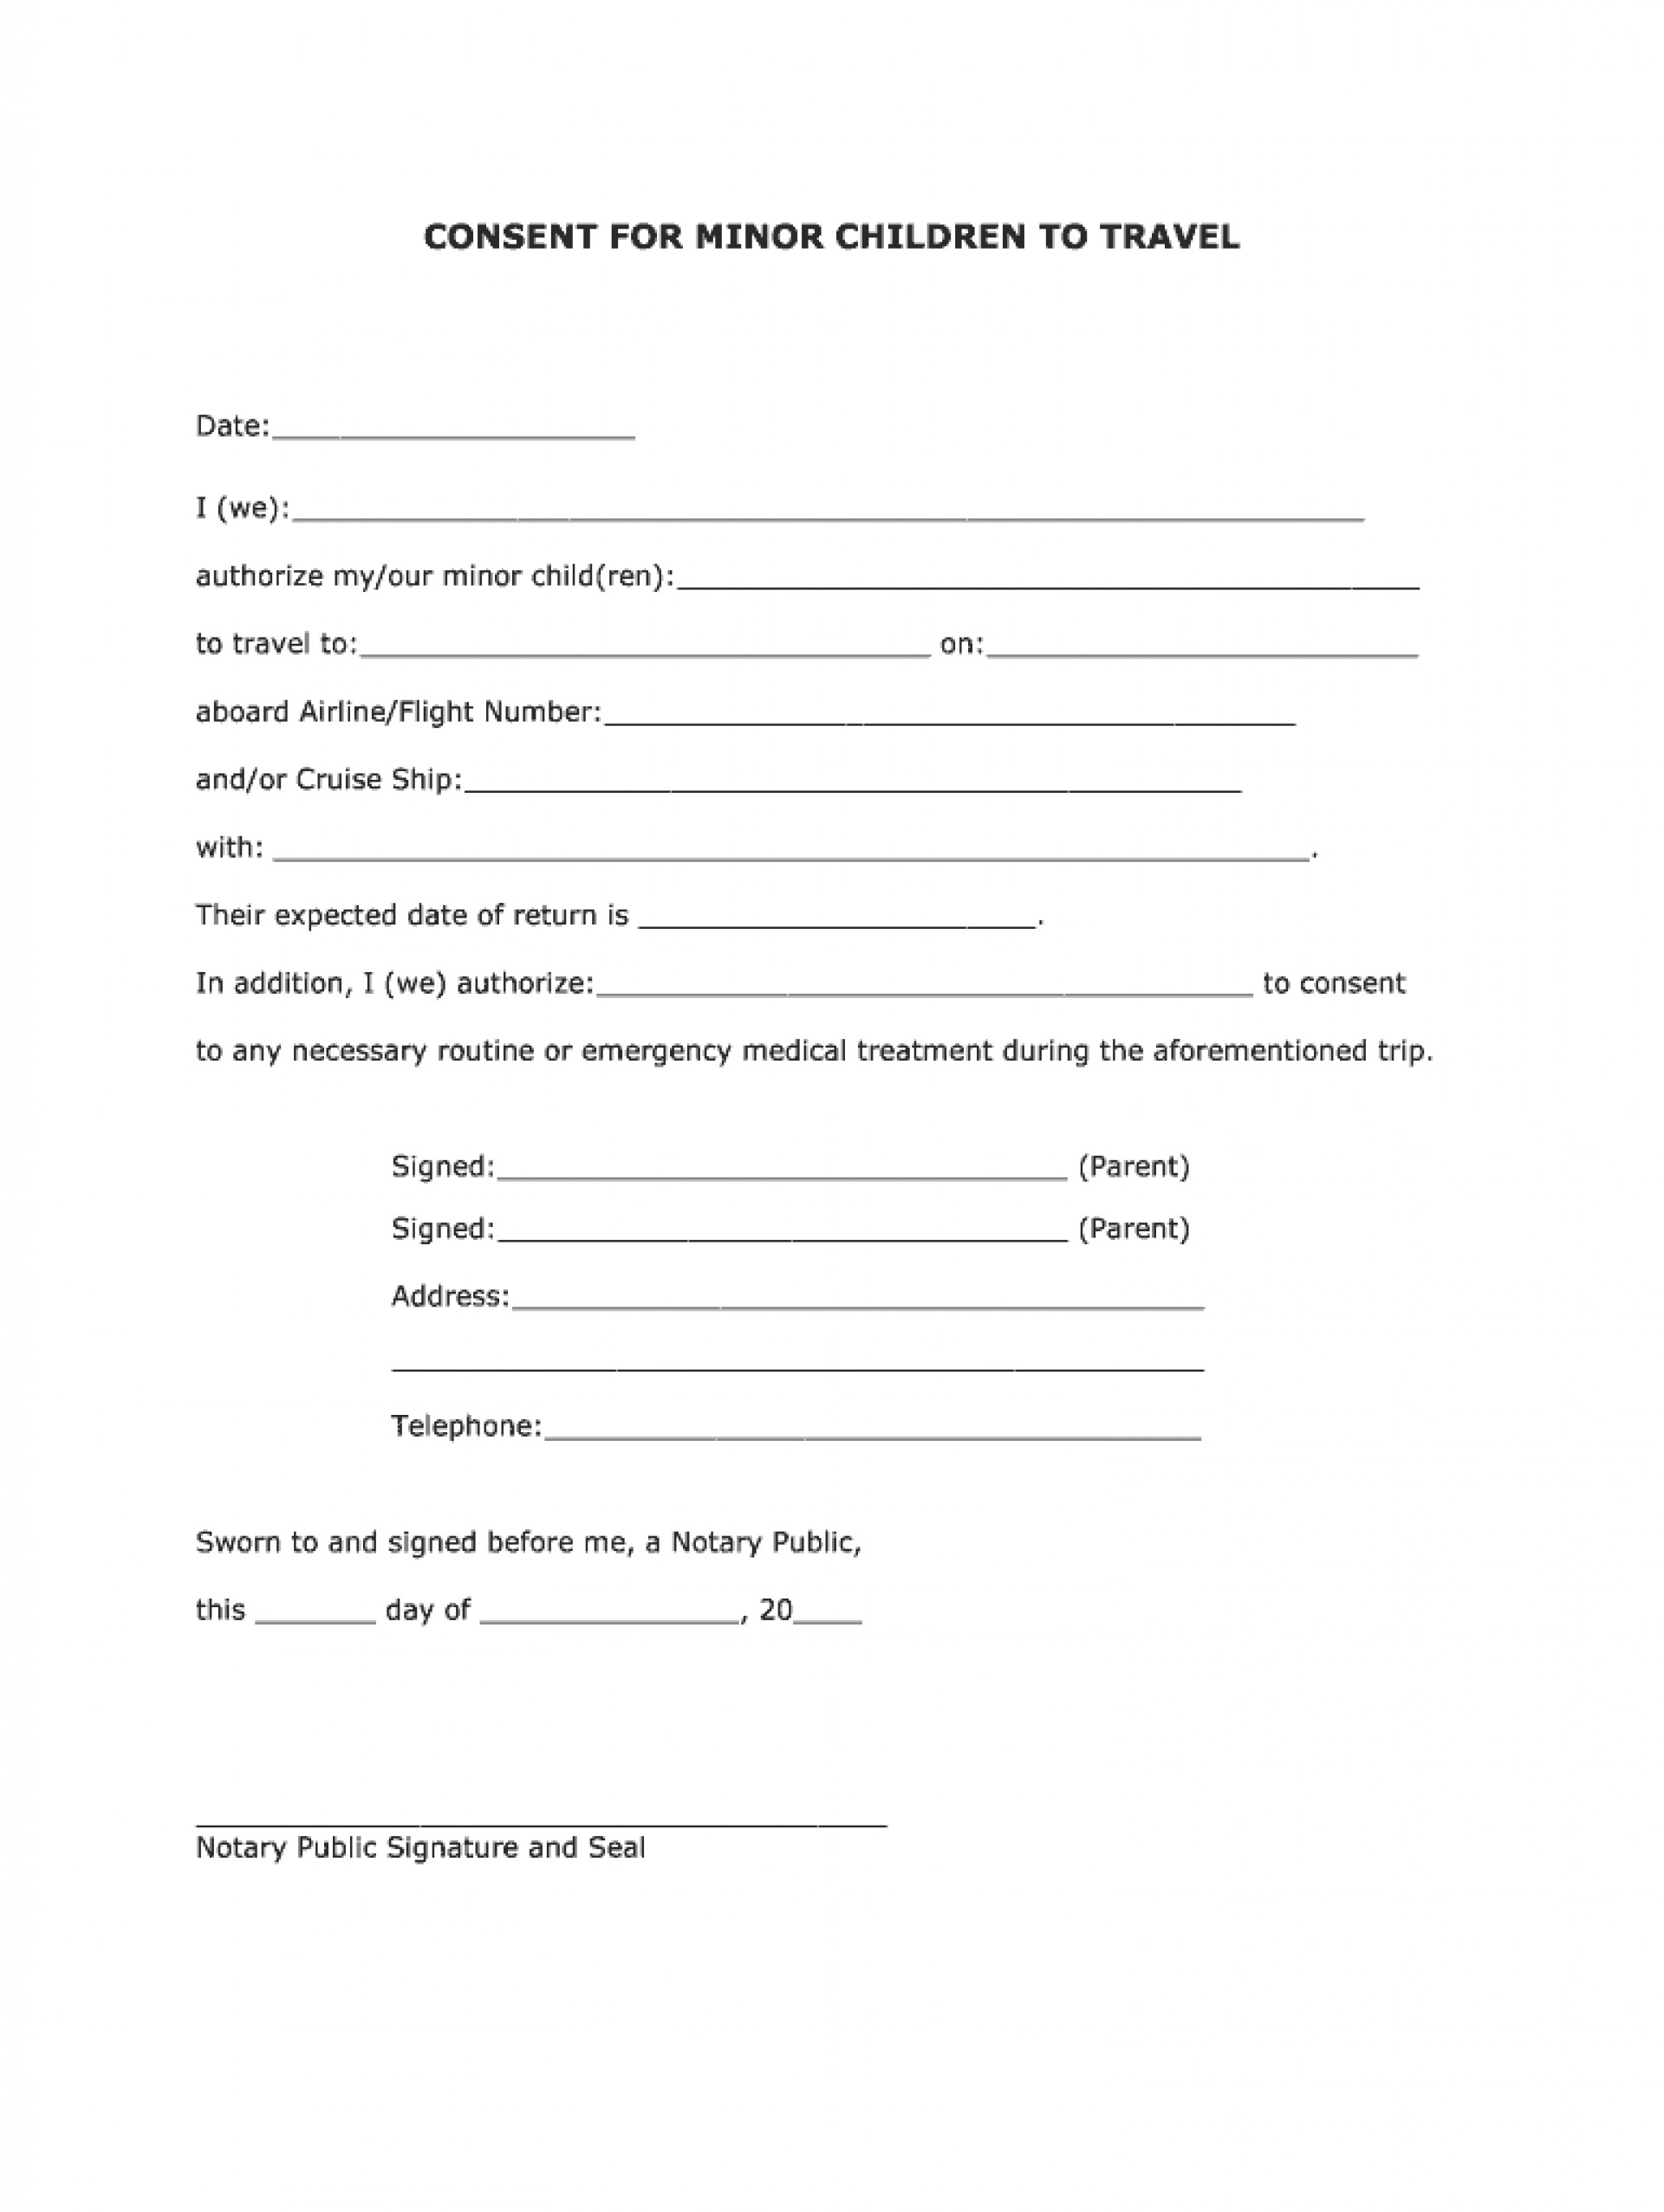 Parental Consent Free Child Travel Consent Form Template Pdf